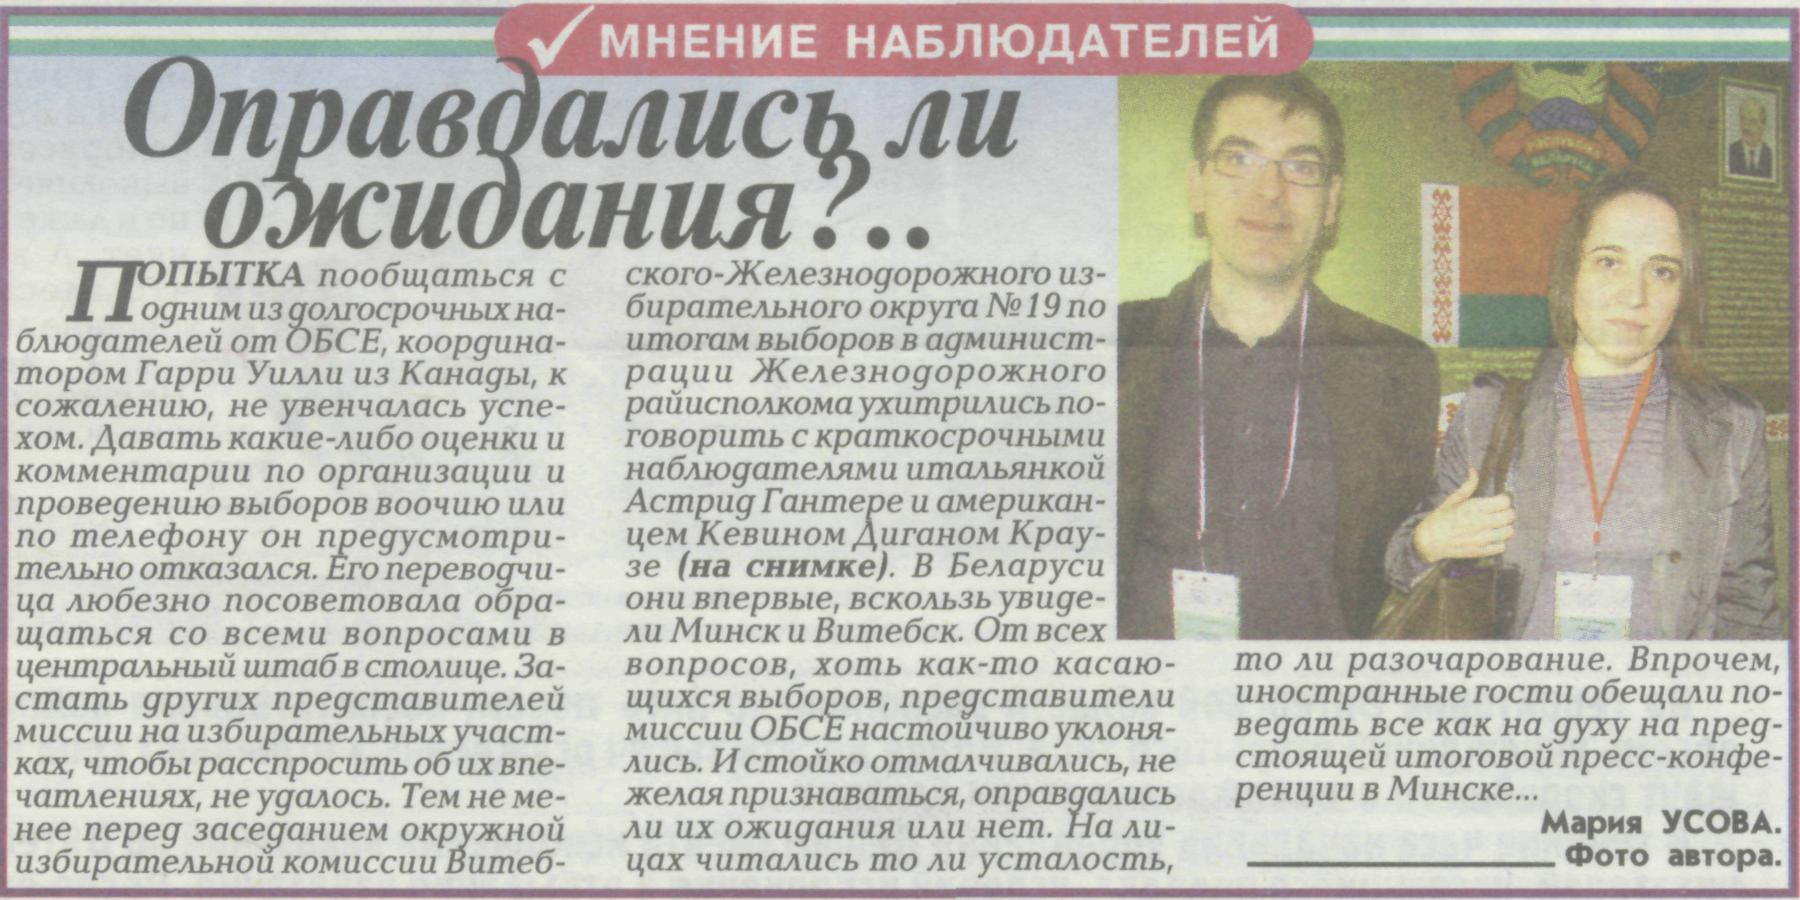 Vitebsk Election News Report